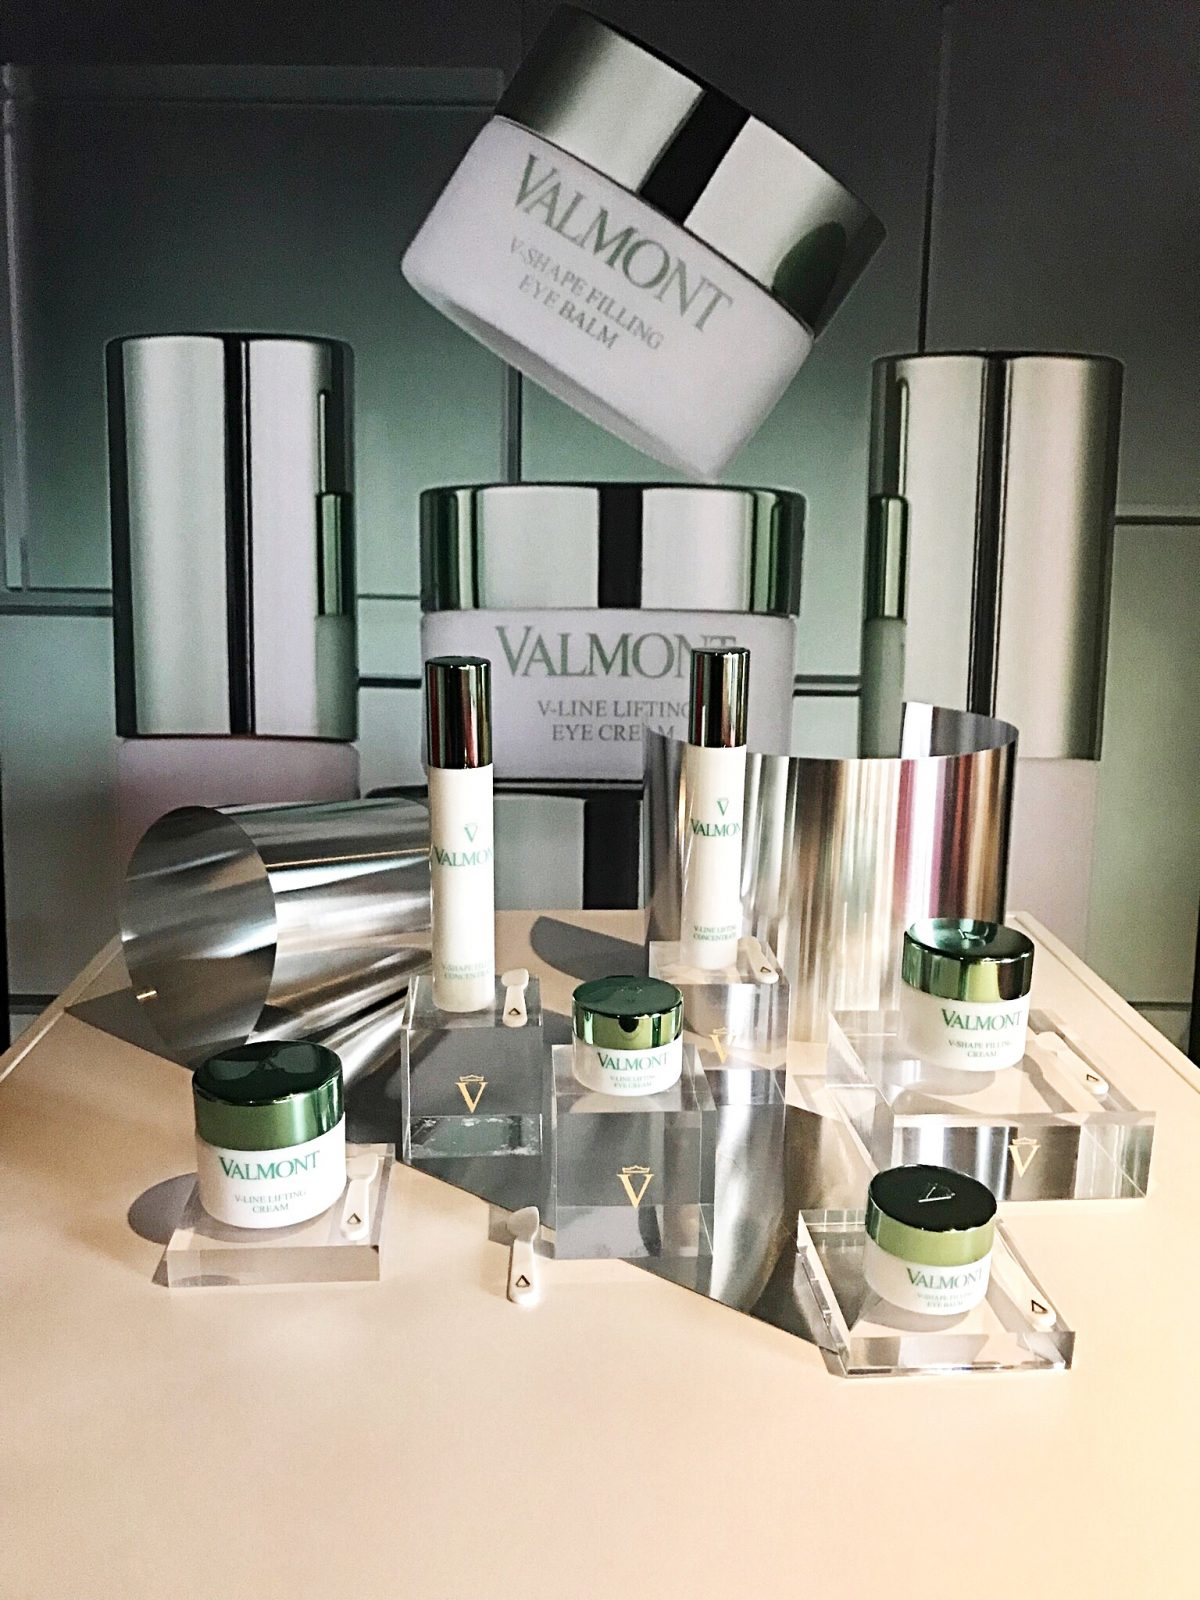 Here's Why Valmont's Anti-Aging Brand Is NOT One Size Fits All